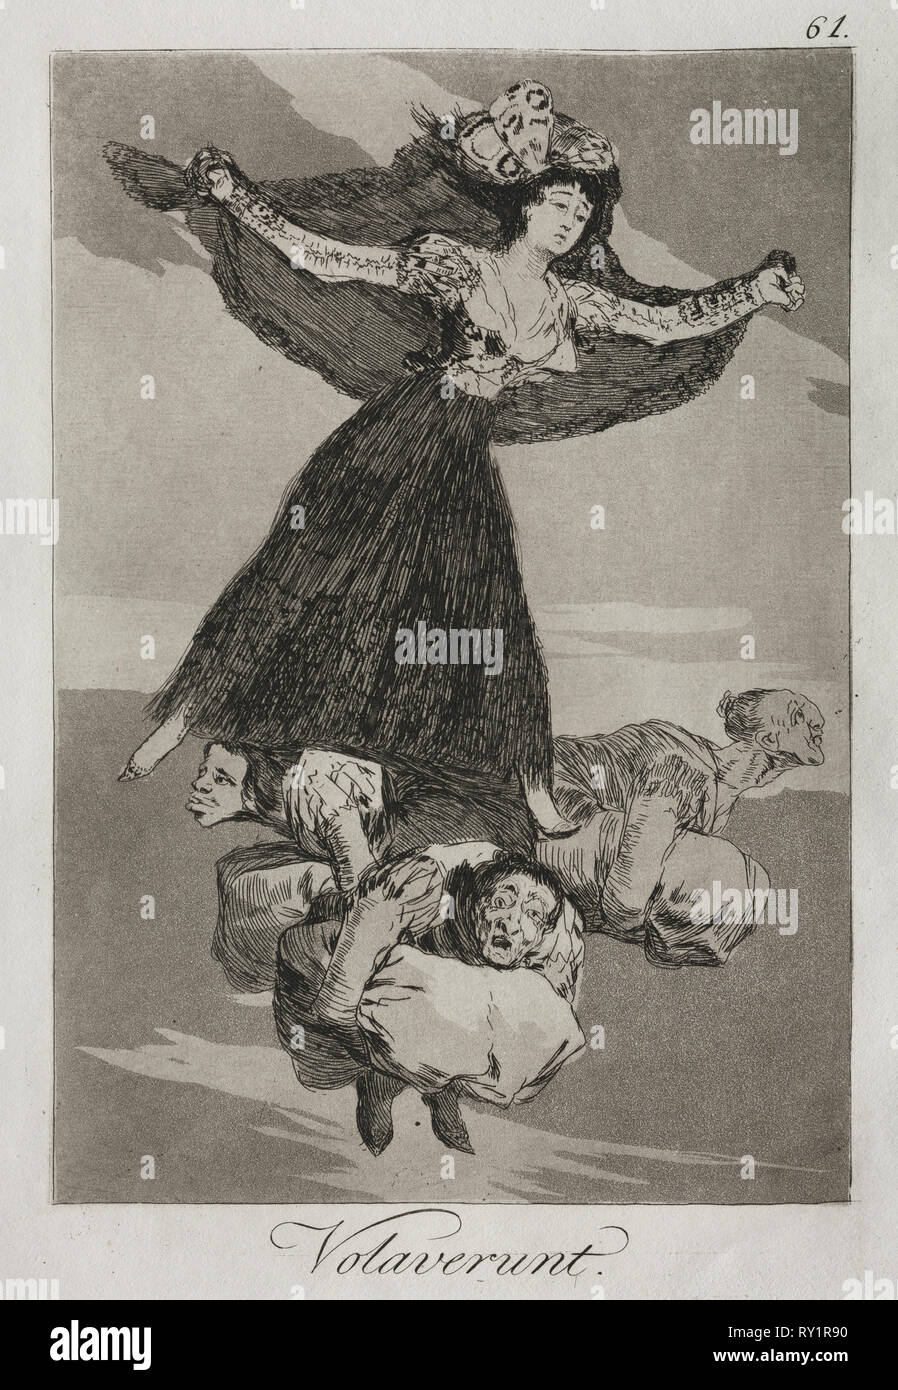 Caprichos:  They Have Flown. Francisco de Goya (Spanish, 1746-1828). Etching and aquatint - Stock Image